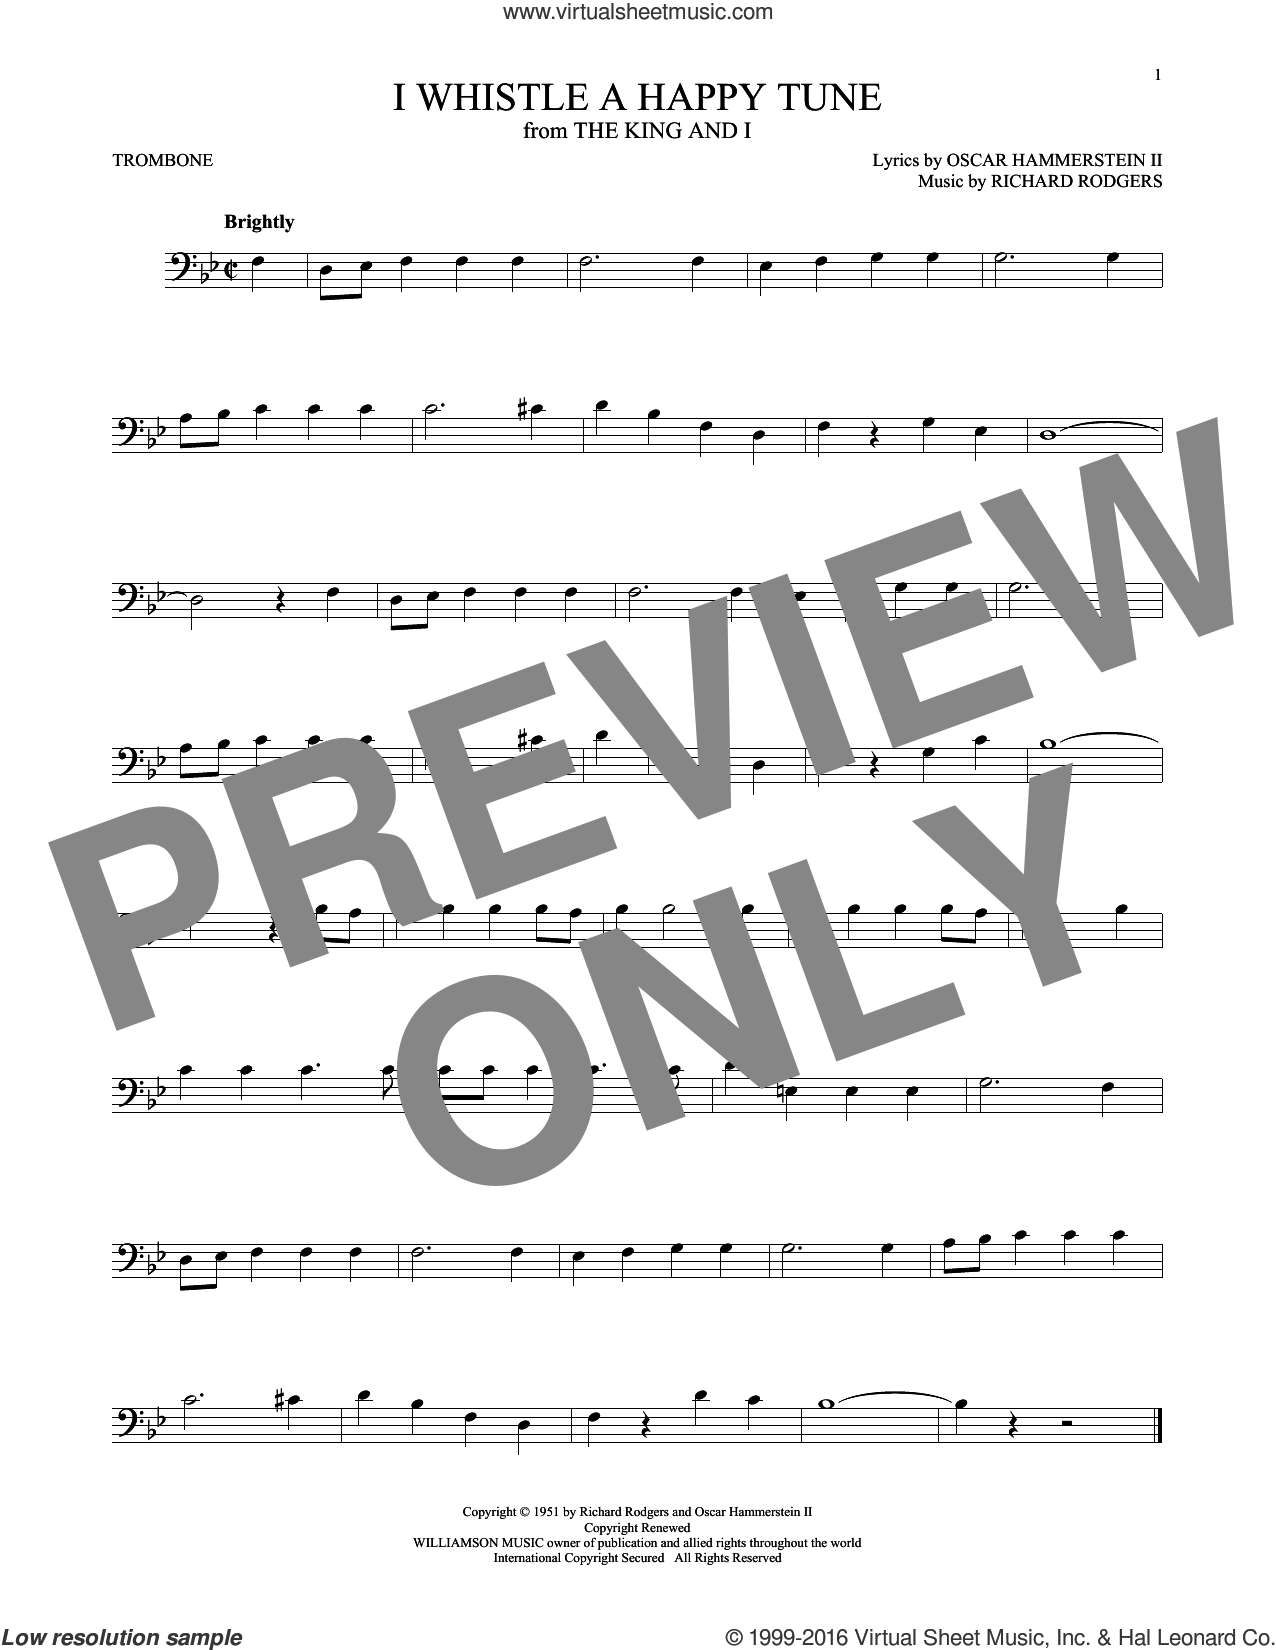 I Whistle A Happy Tune sheet music for trombone solo by Rodgers & Hammerstein, Oscar II Hammerstein and Richard Rodgers. Score Image Preview.